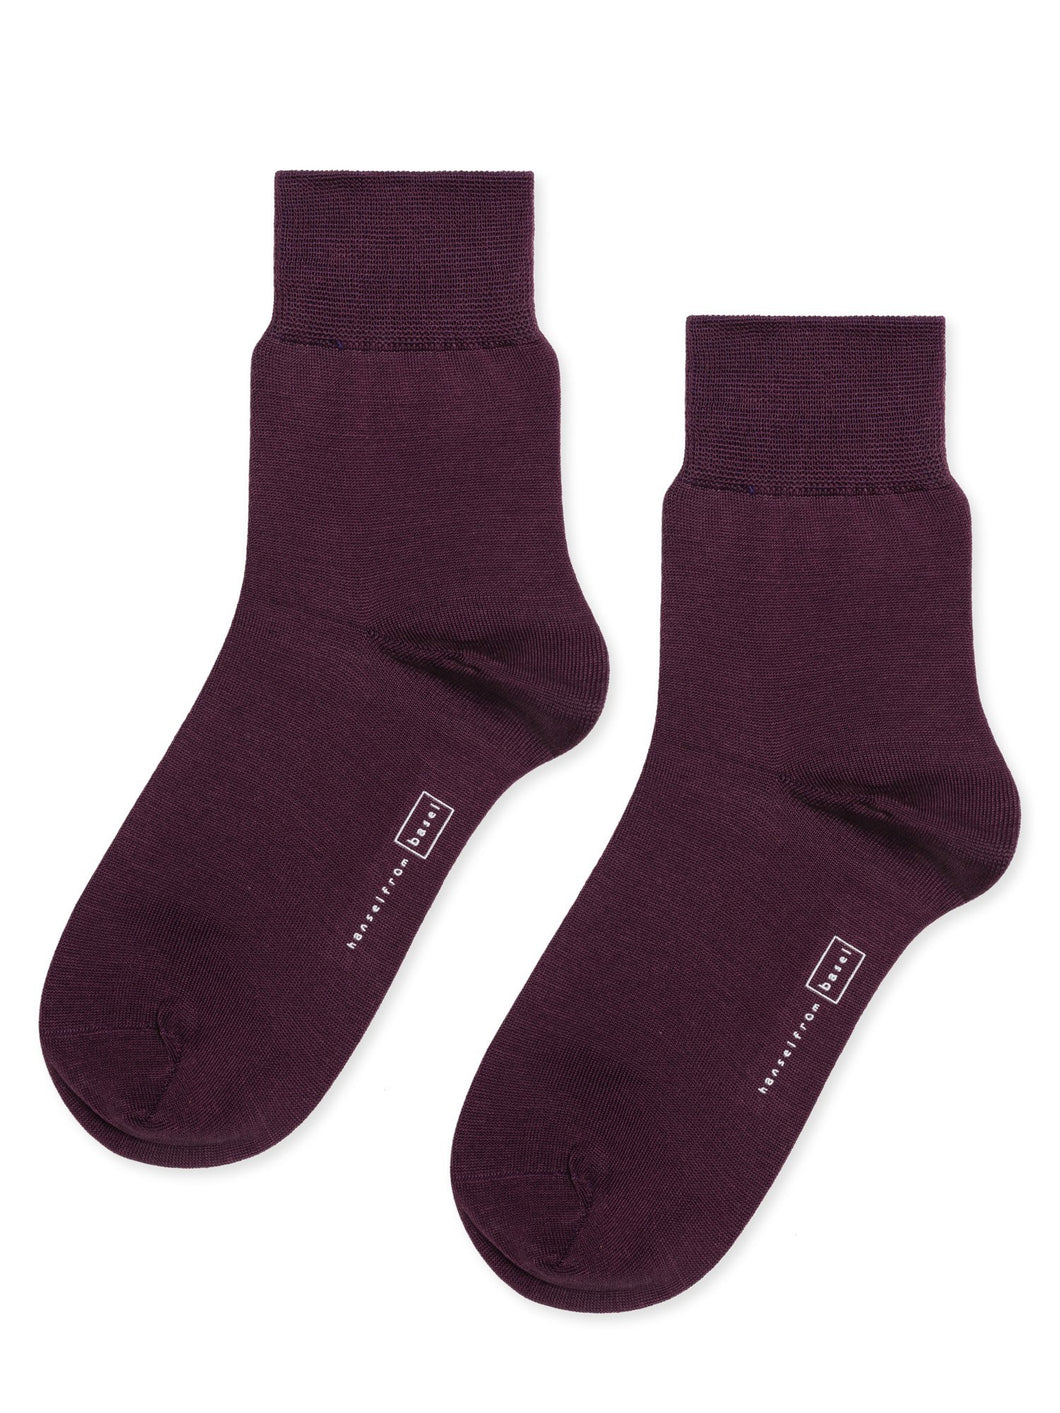 Trouser Crew Socks